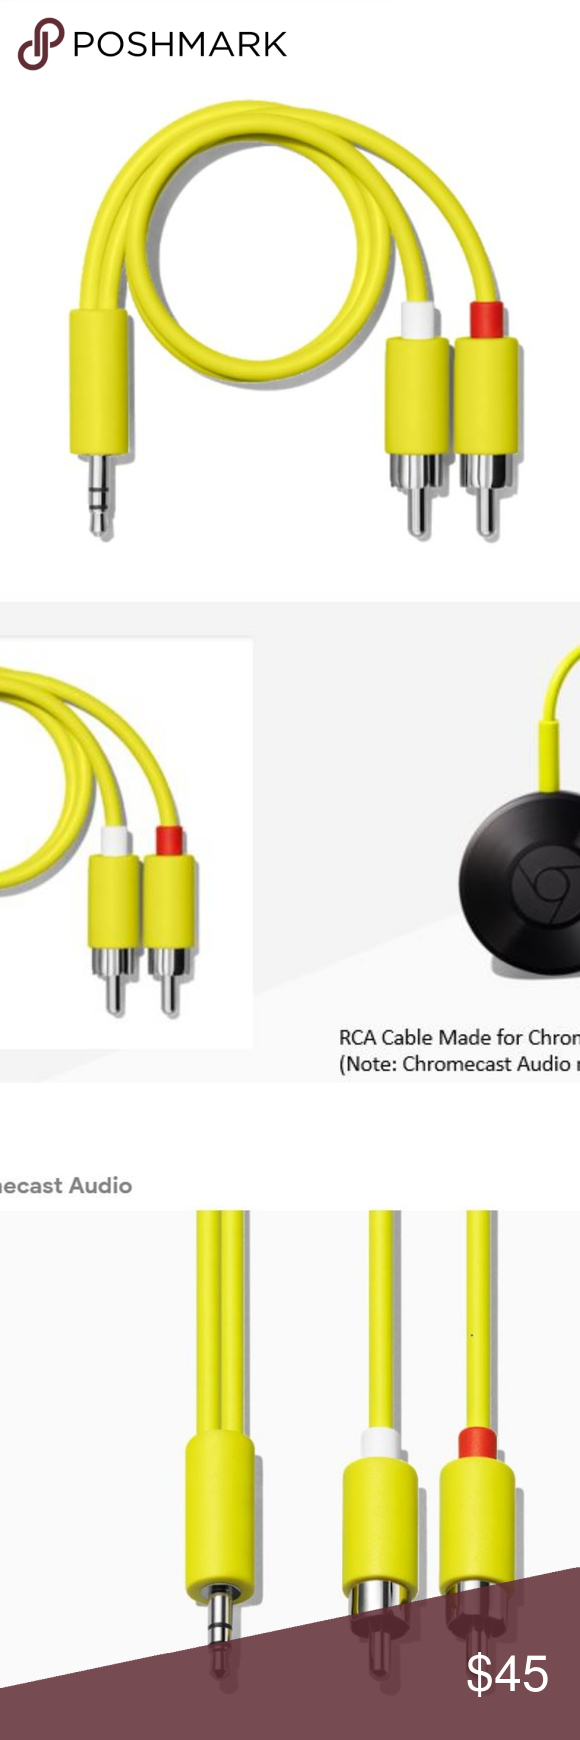 hight resolution of google optical cable chromecast audio google chromecast audio optical cable this item is brand new